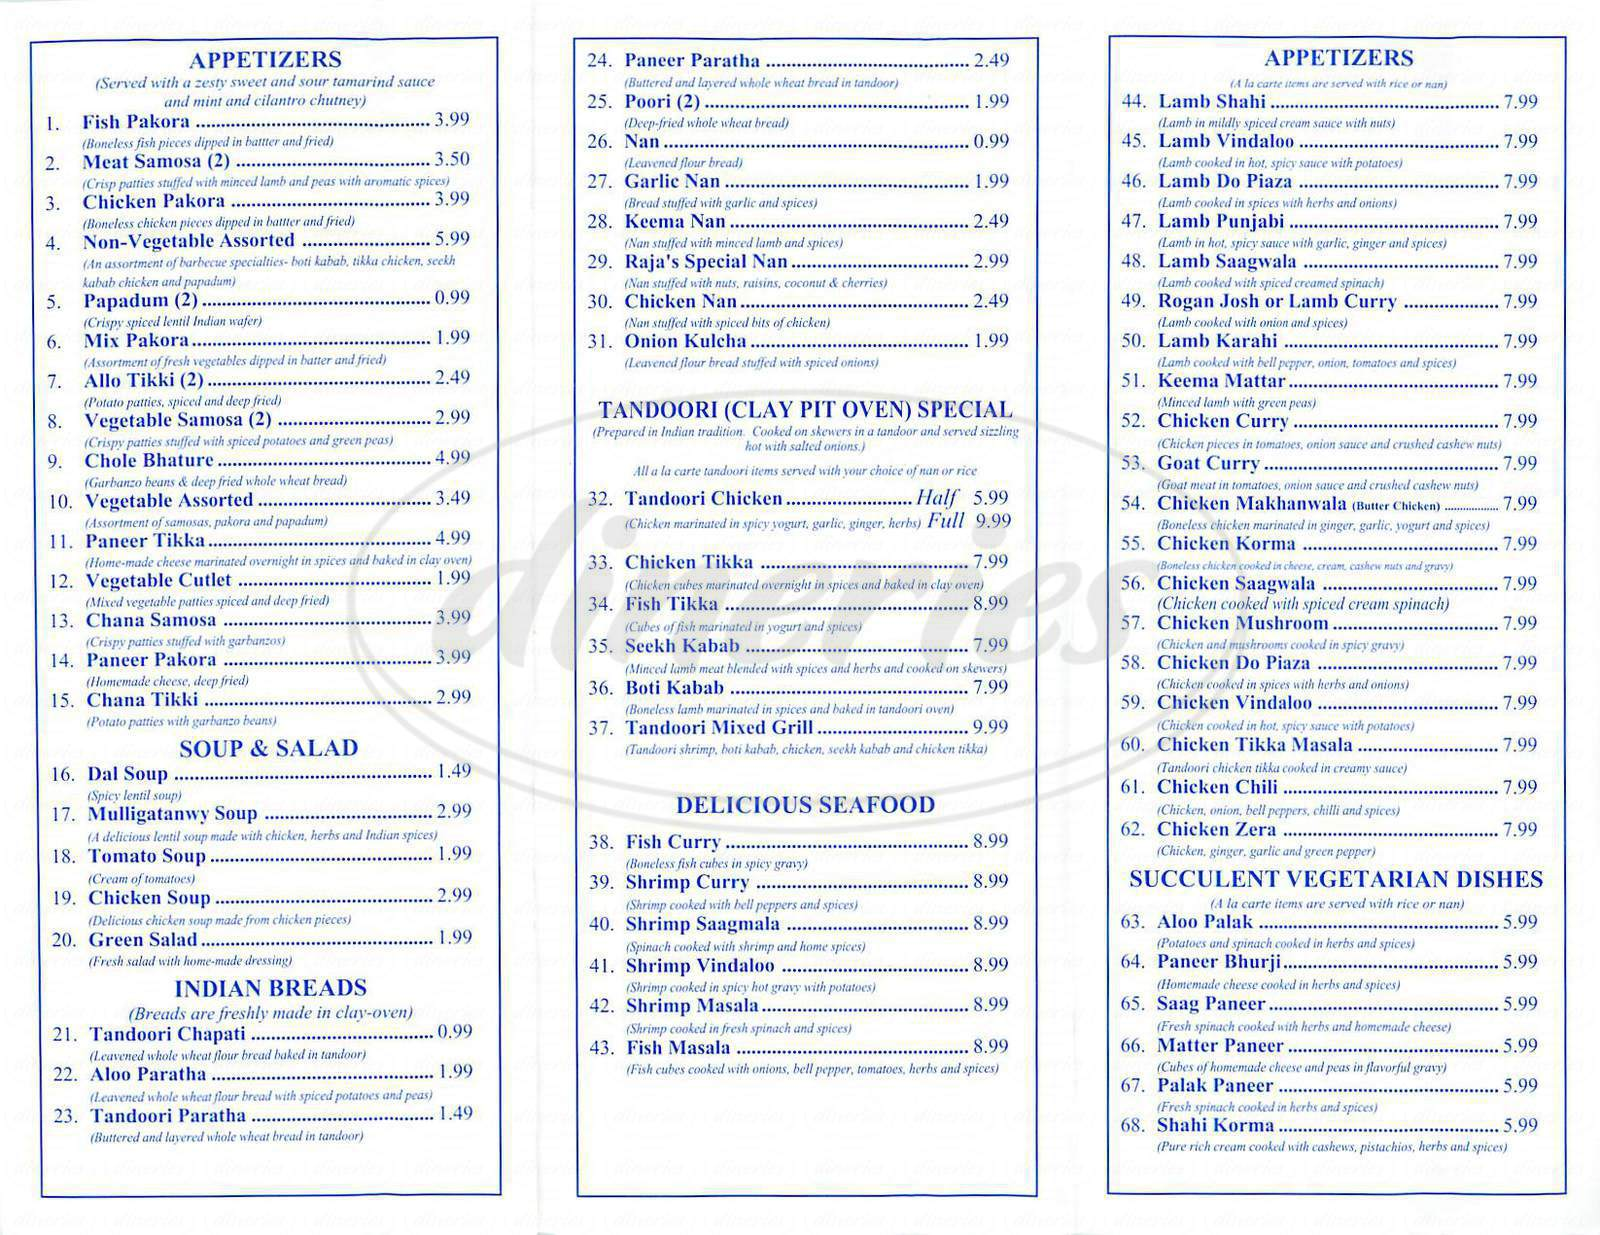 menu for Raja Sweets & Indian Cuisine